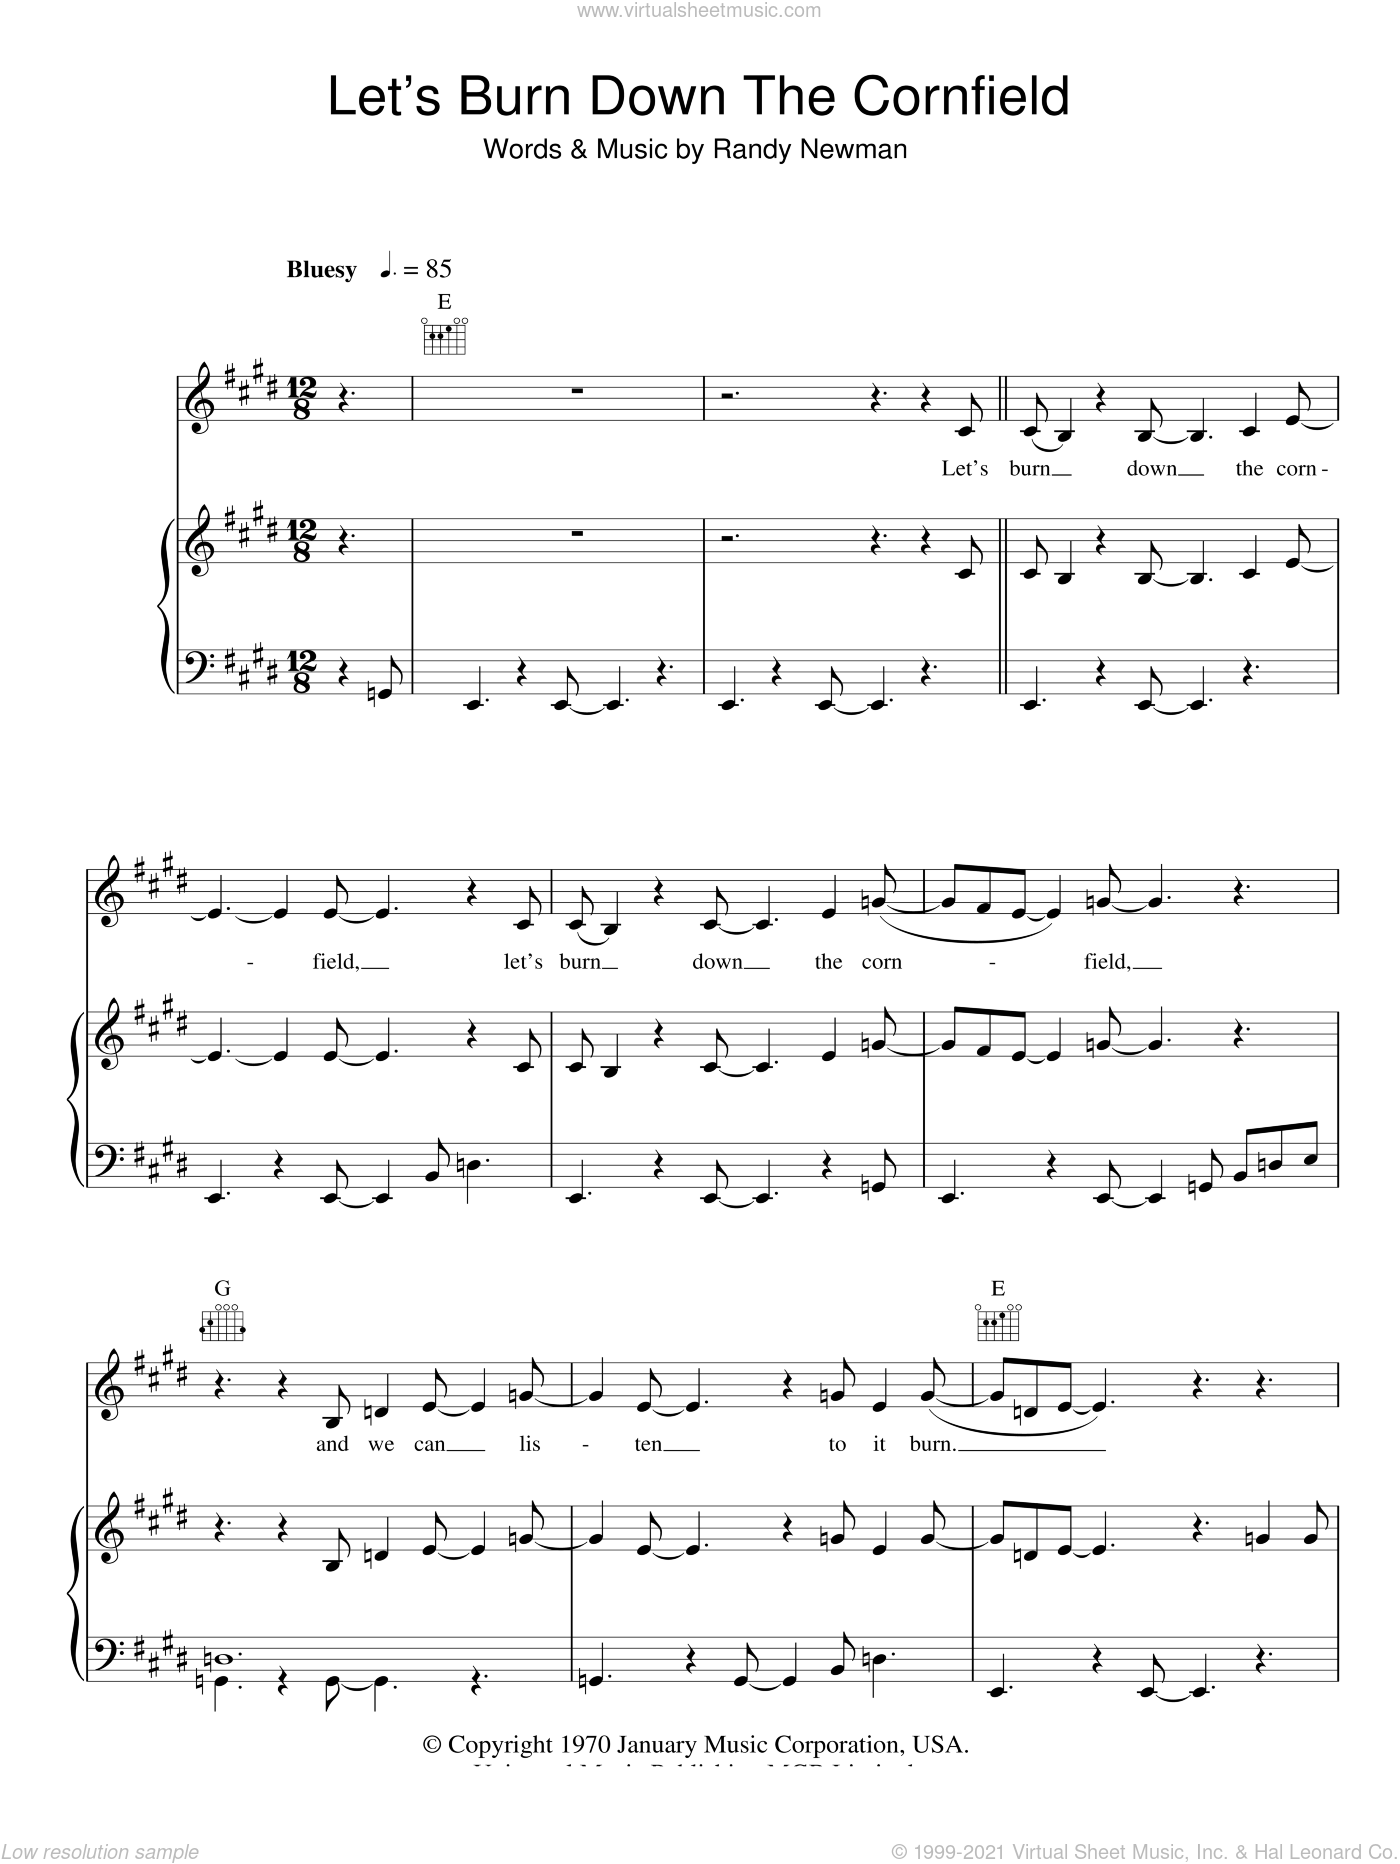 Let's Burn Down The Cornfield sheet music for voice, piano or guitar by Randy Newman, intermediate skill level